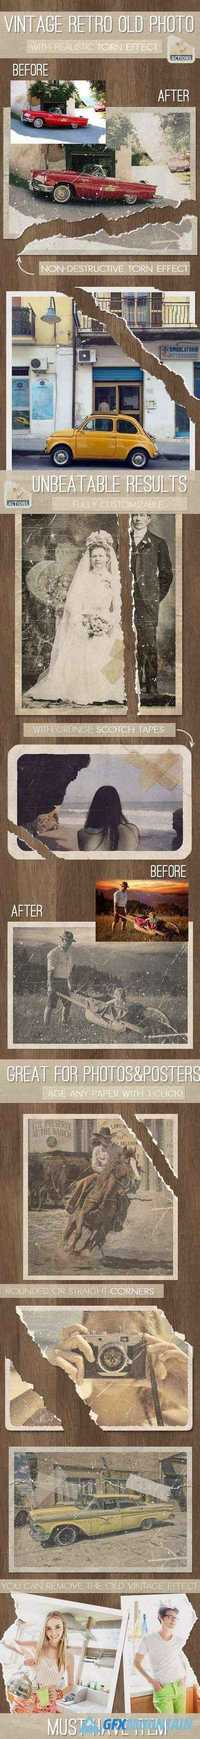 GraphicRiver - Old Photo with Torn Ripped Effect Photoshop Action 12406934